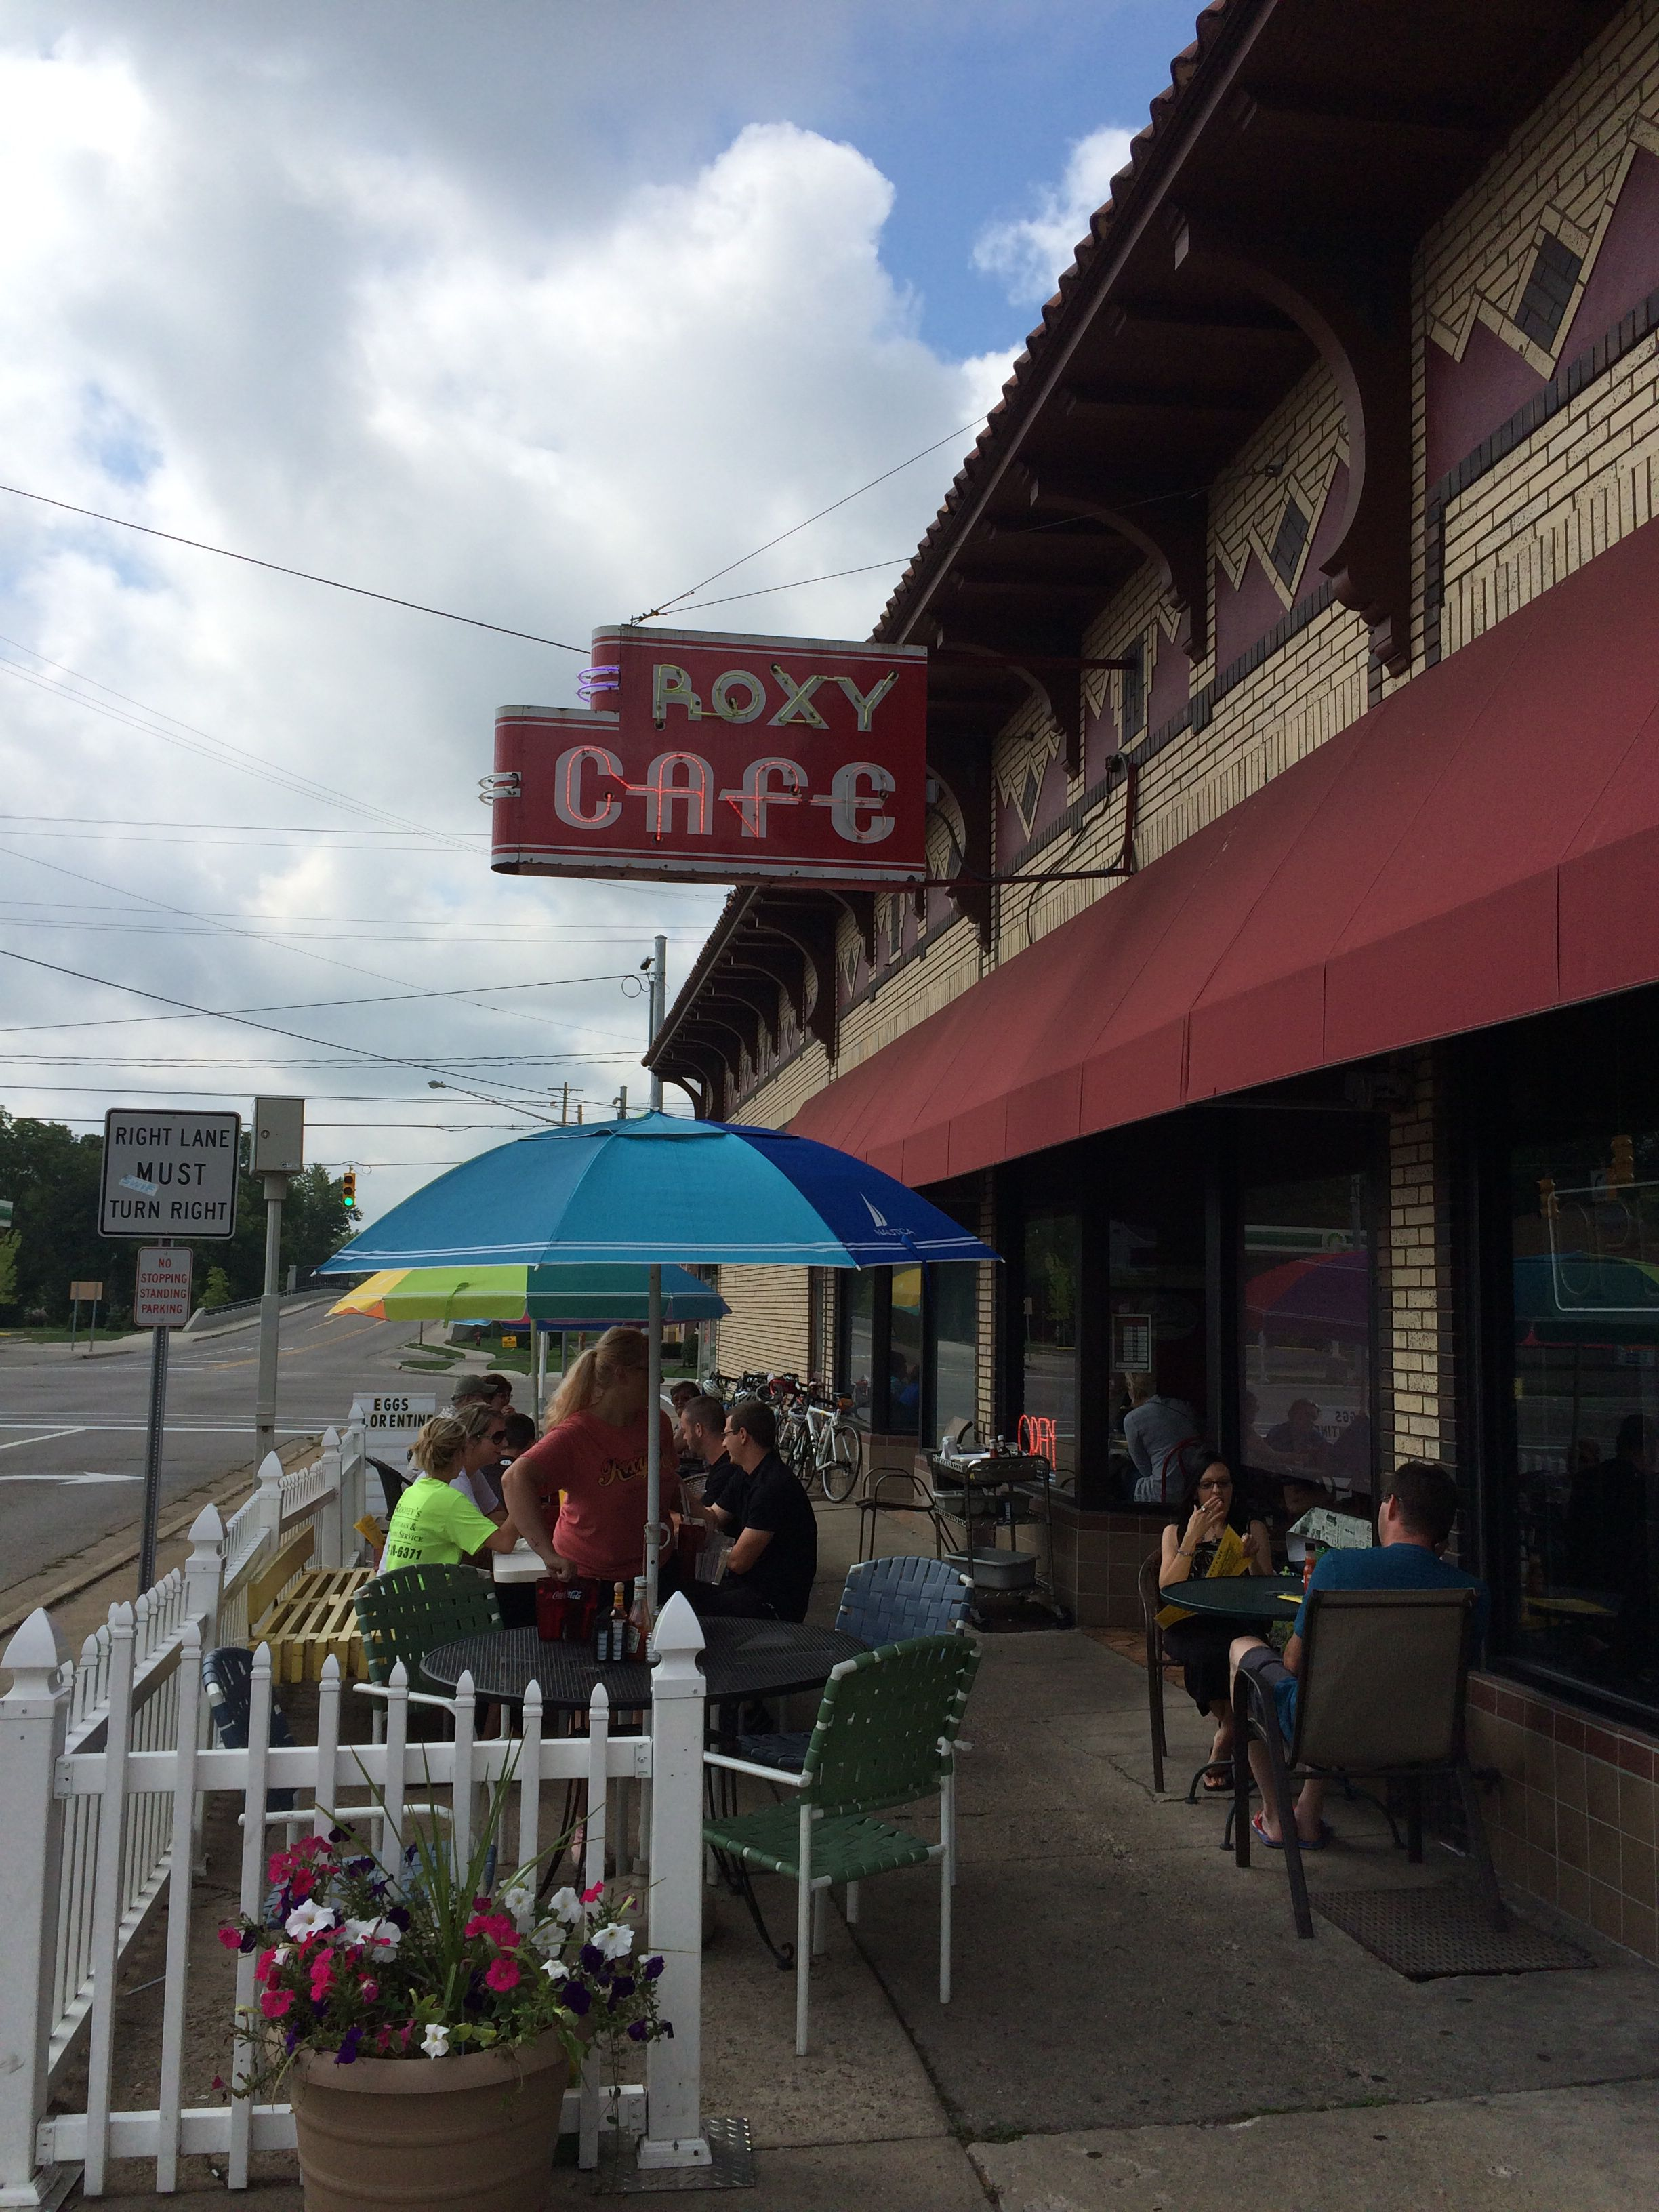 Roxy cafe Michigan